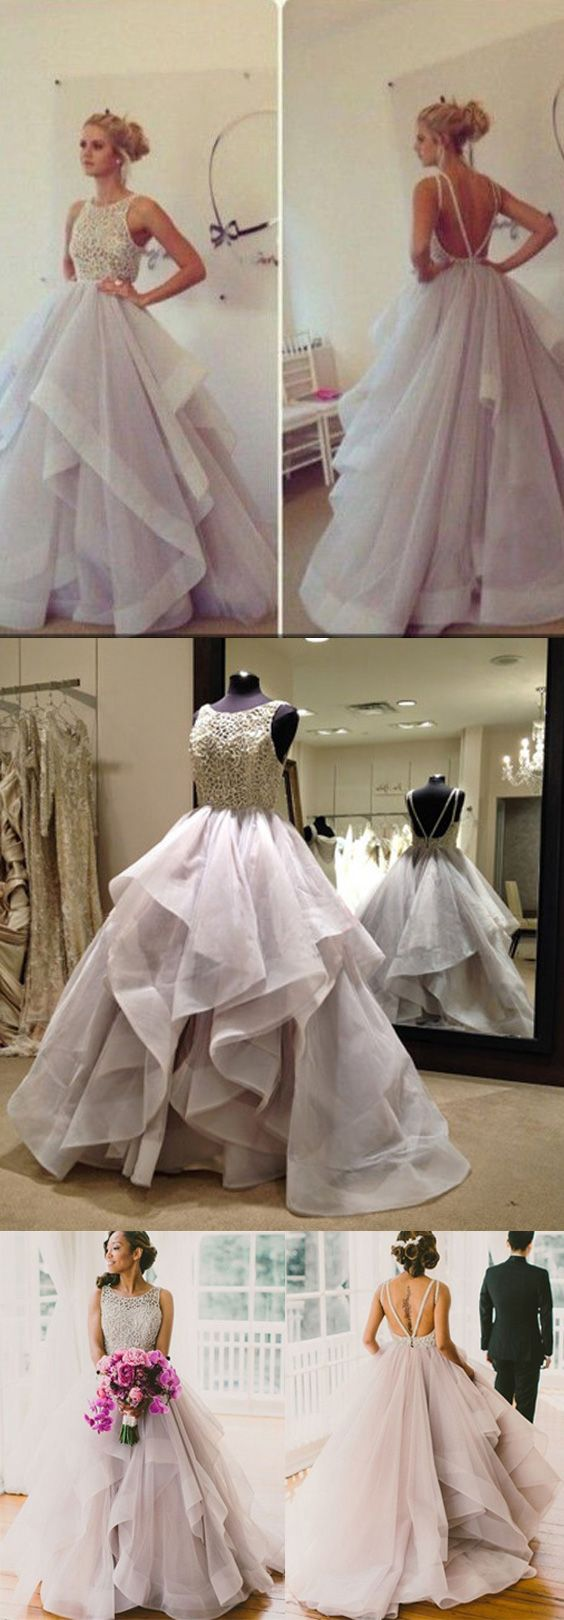 Backless Prom Dresses Glamorous Ball Gown Lace Puffy Tulle Long Sexy Evening Gowns For Teens Juniors Dress - Thumbnail 1